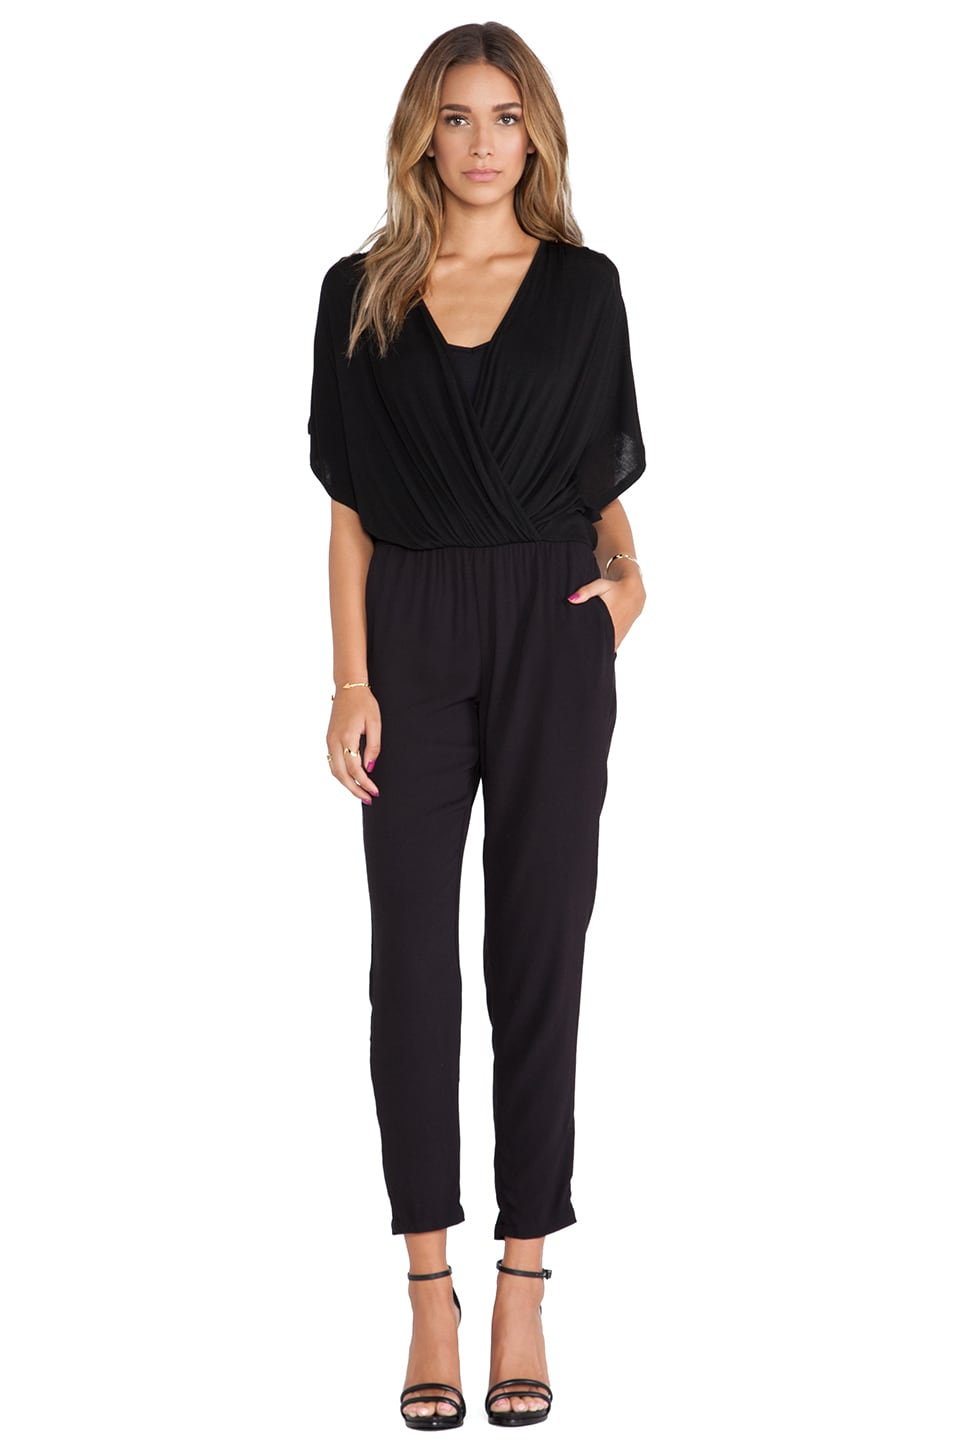 Ella Moss Icon Jumpsuit in Black